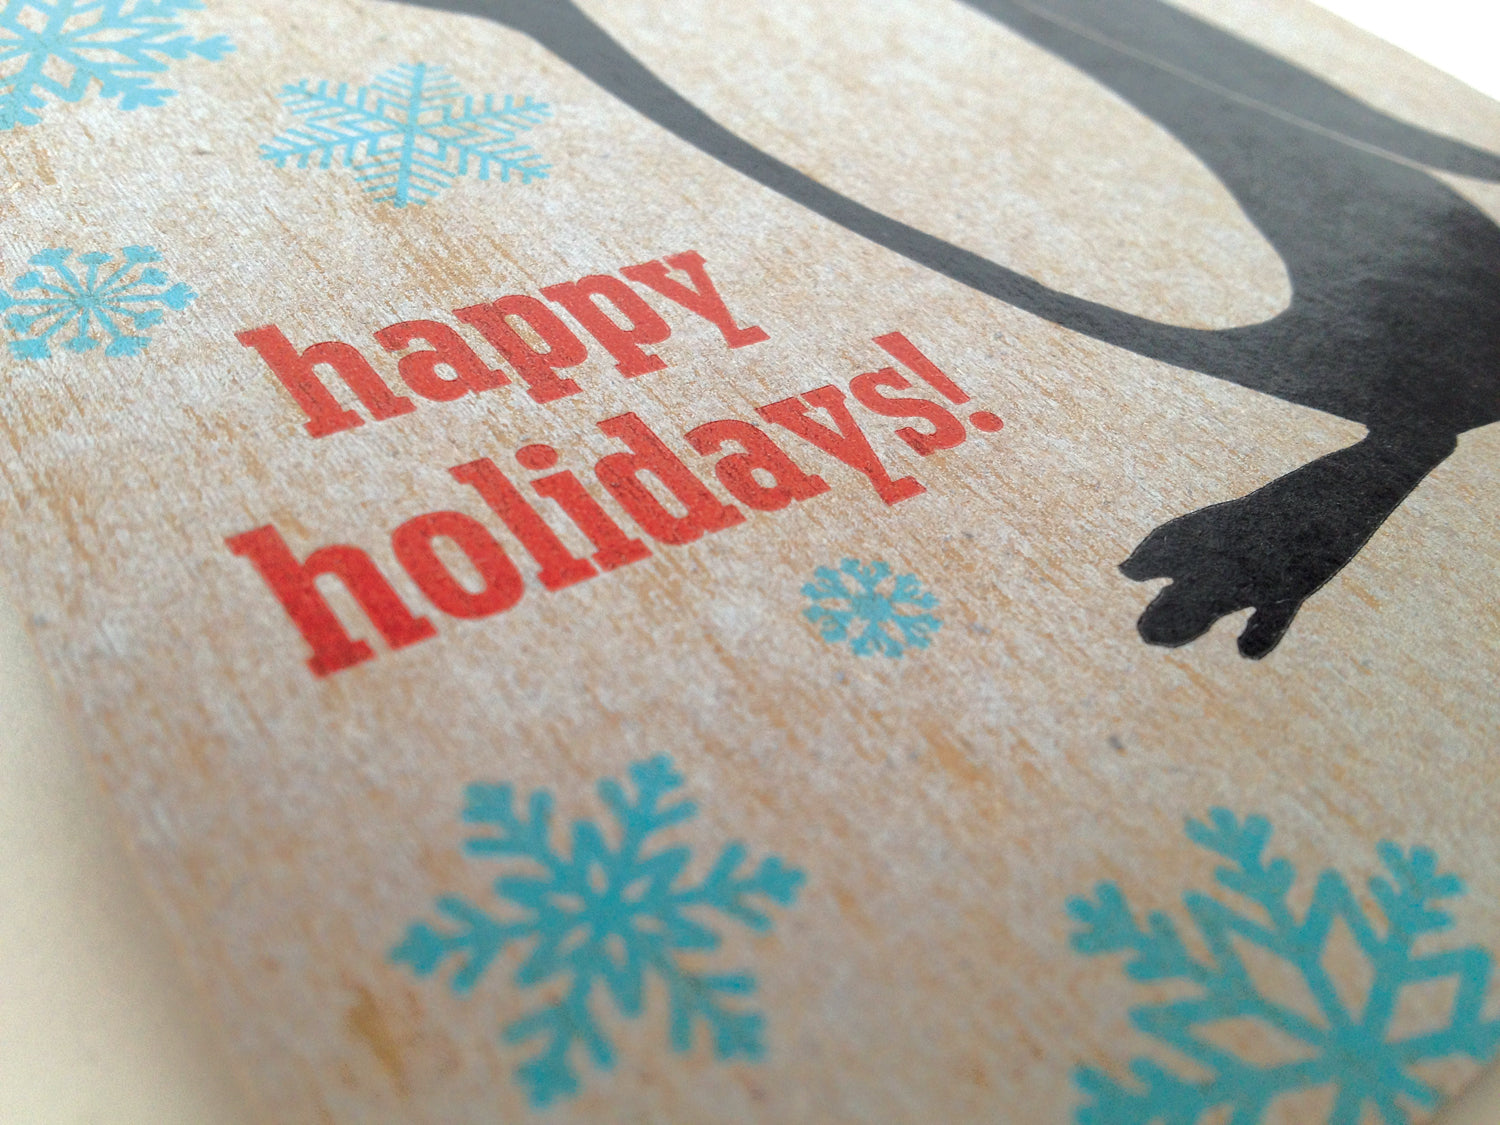 Penguin Holiday Card letterpress printed in Rochester NY